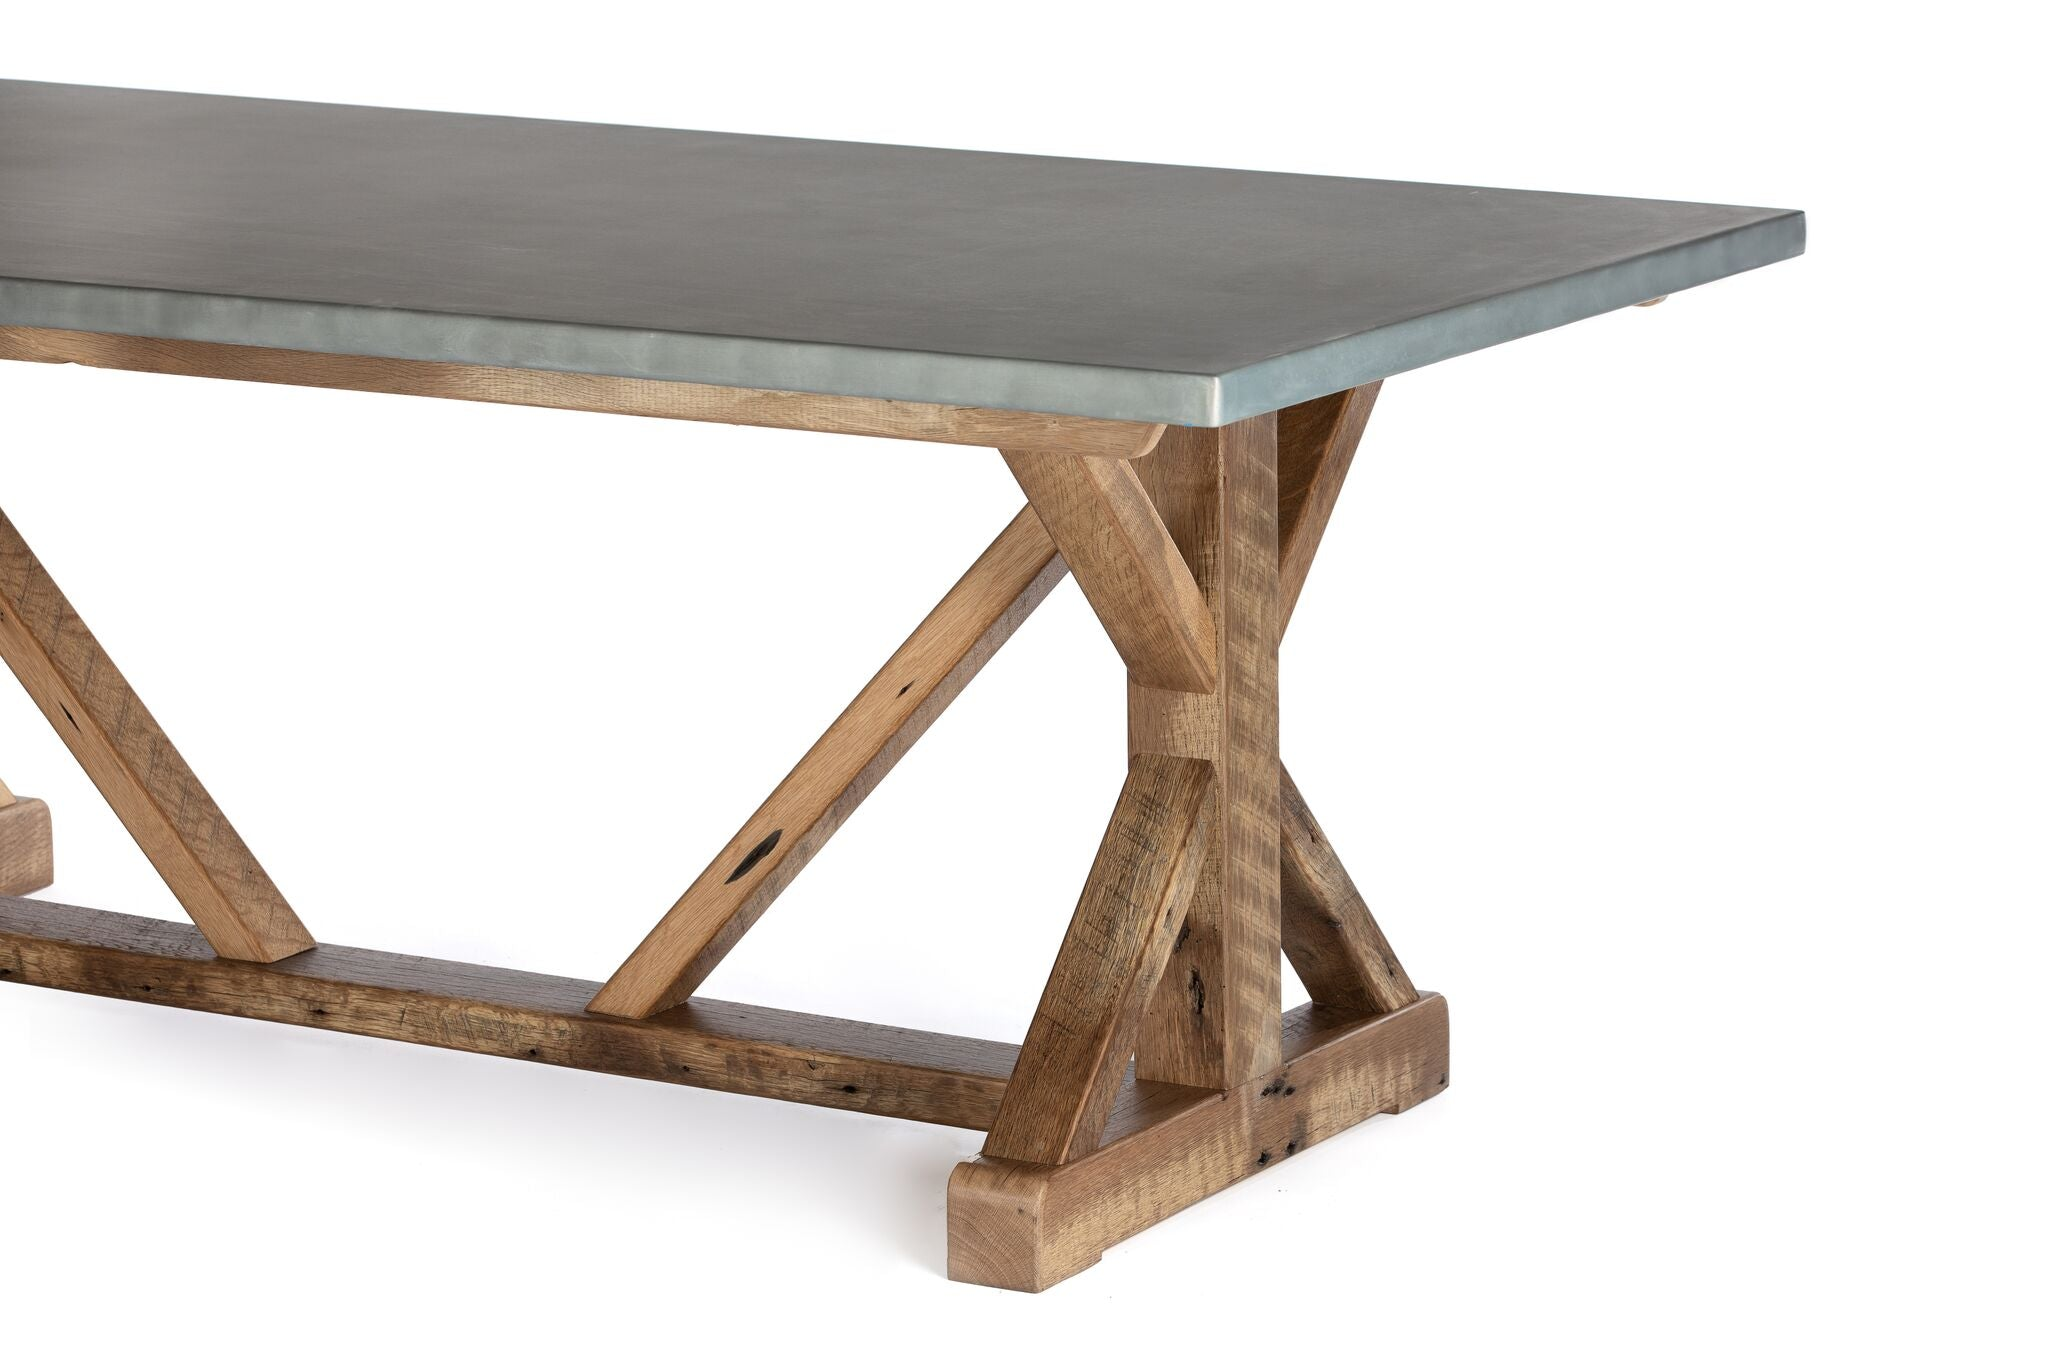 "Zinc Rectangular Table | French Trestle Table | CLASSIC | Driftwood Grey on Reclaimed Oak | CUSTOM SIZE 76""L 34""W 36""H 